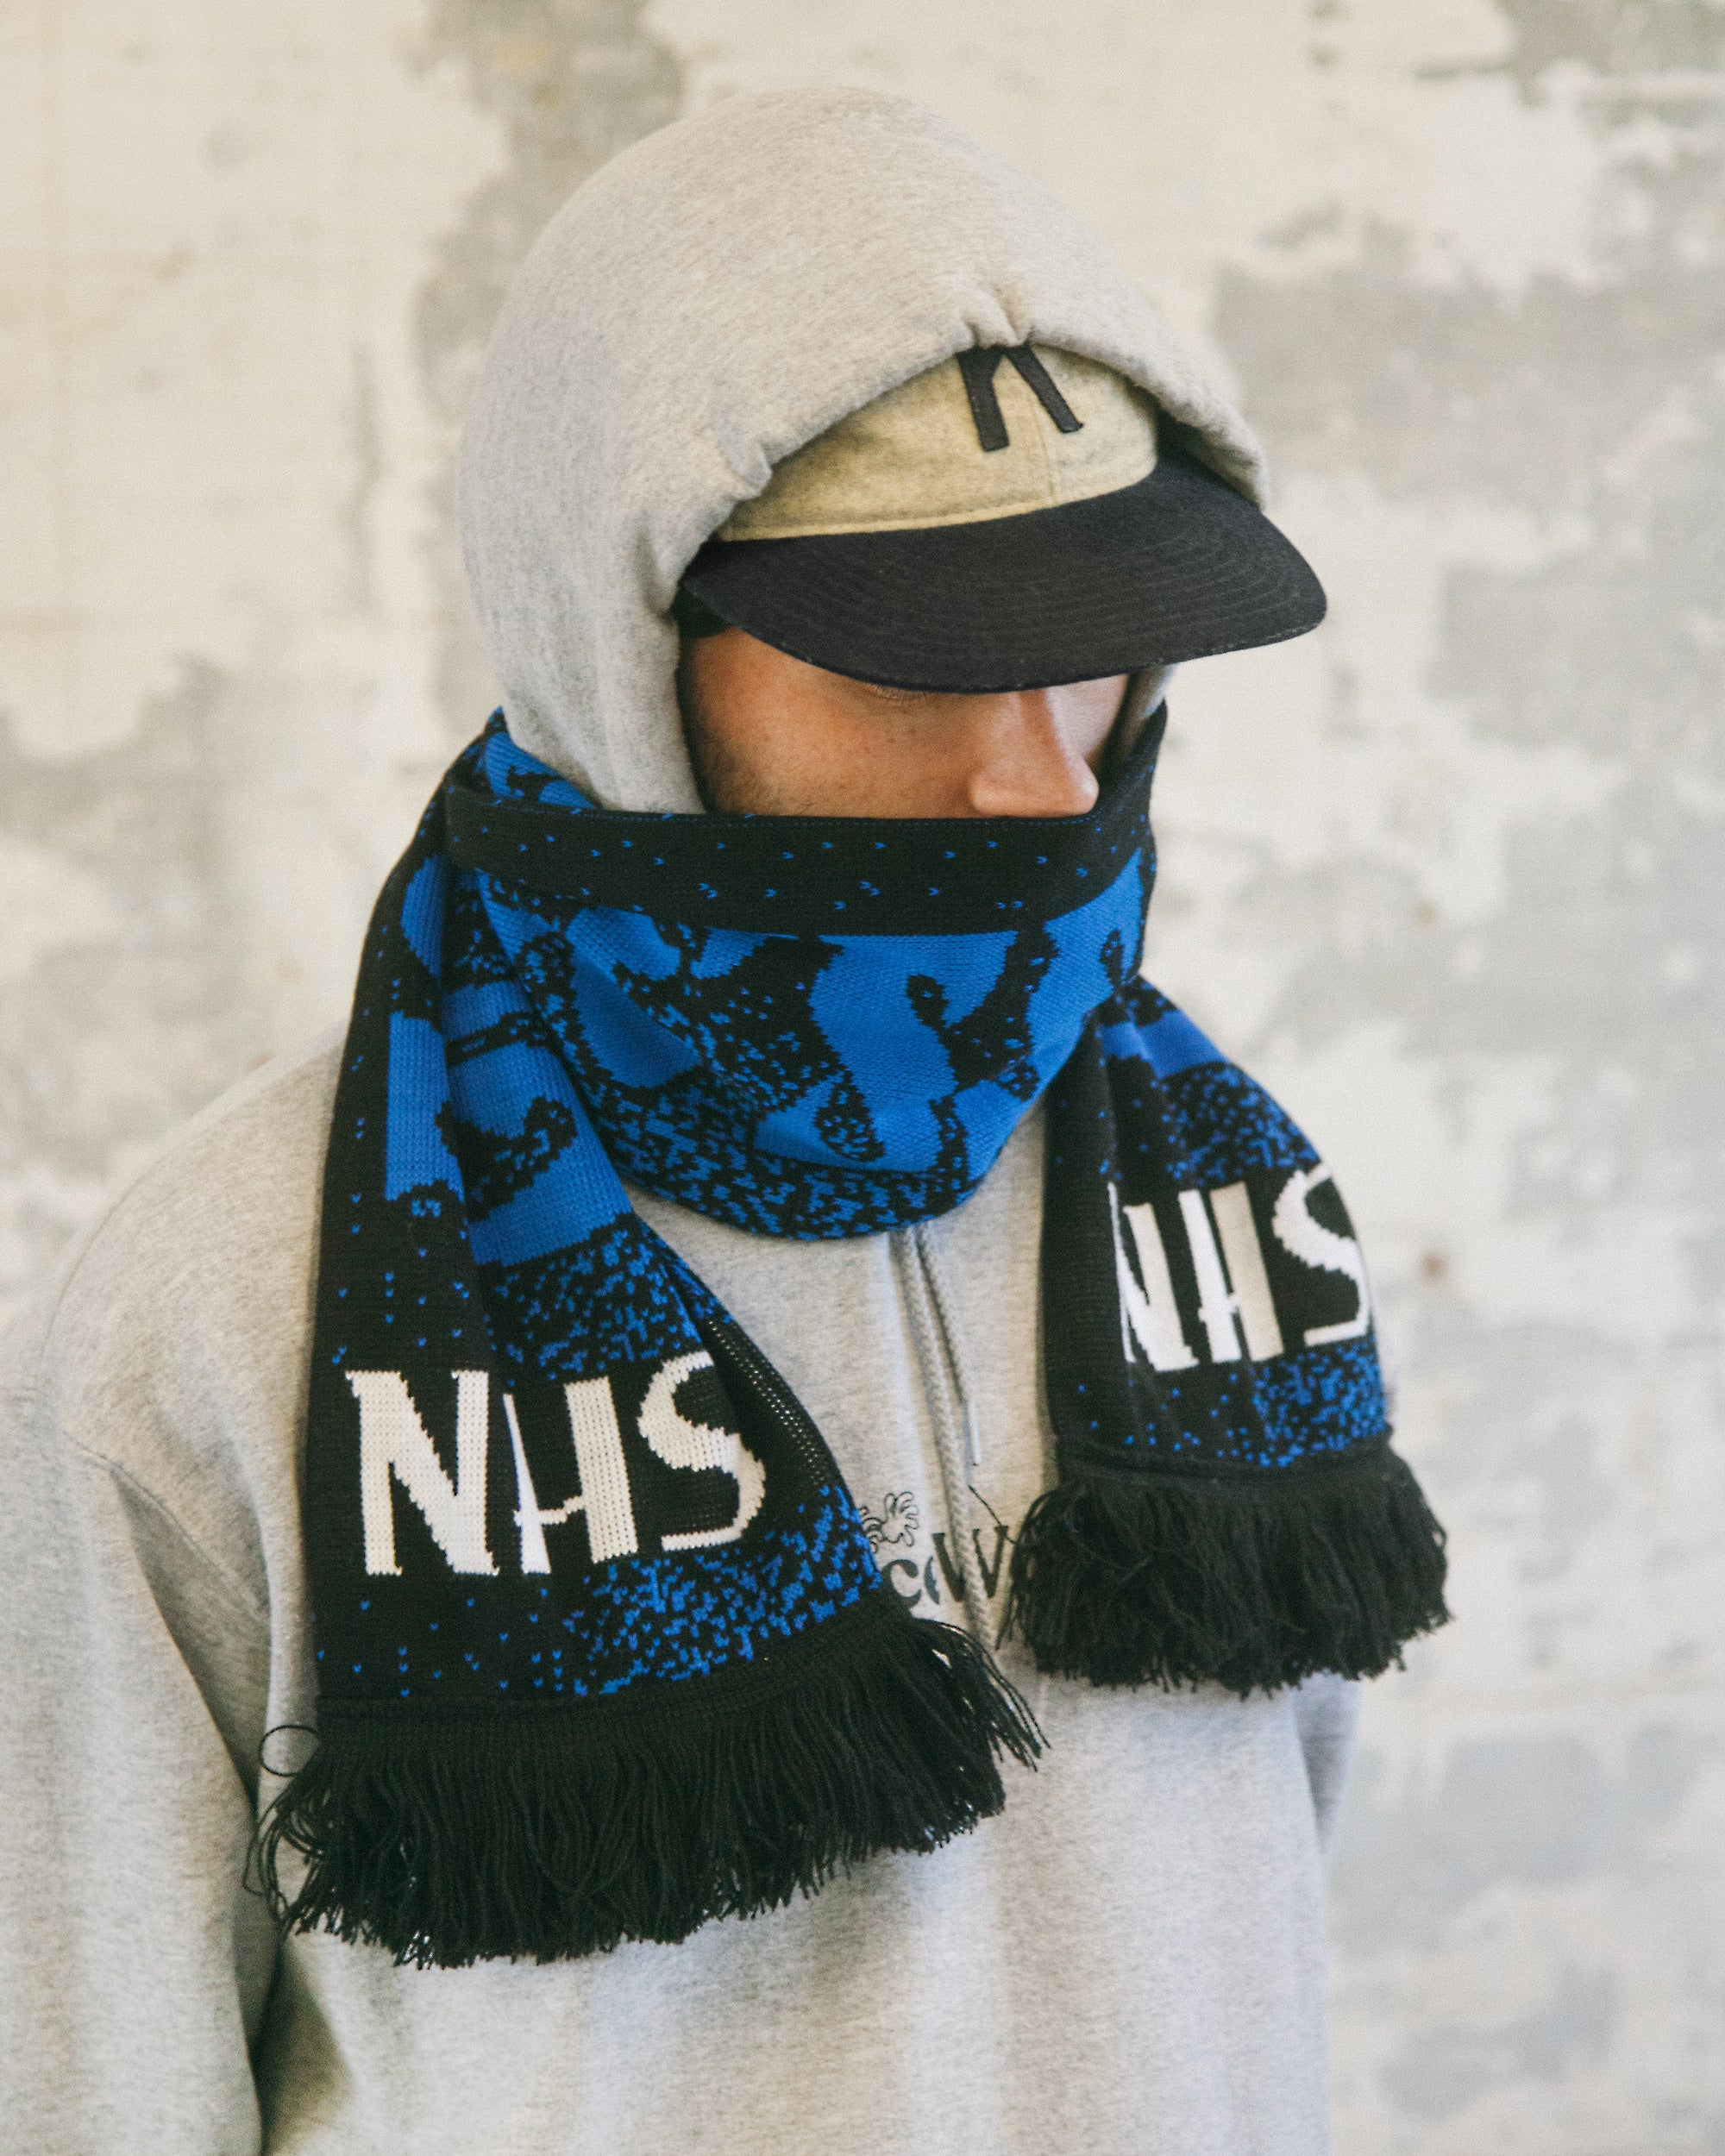 Blacksmith - God Bless The NHS Scarf - Black